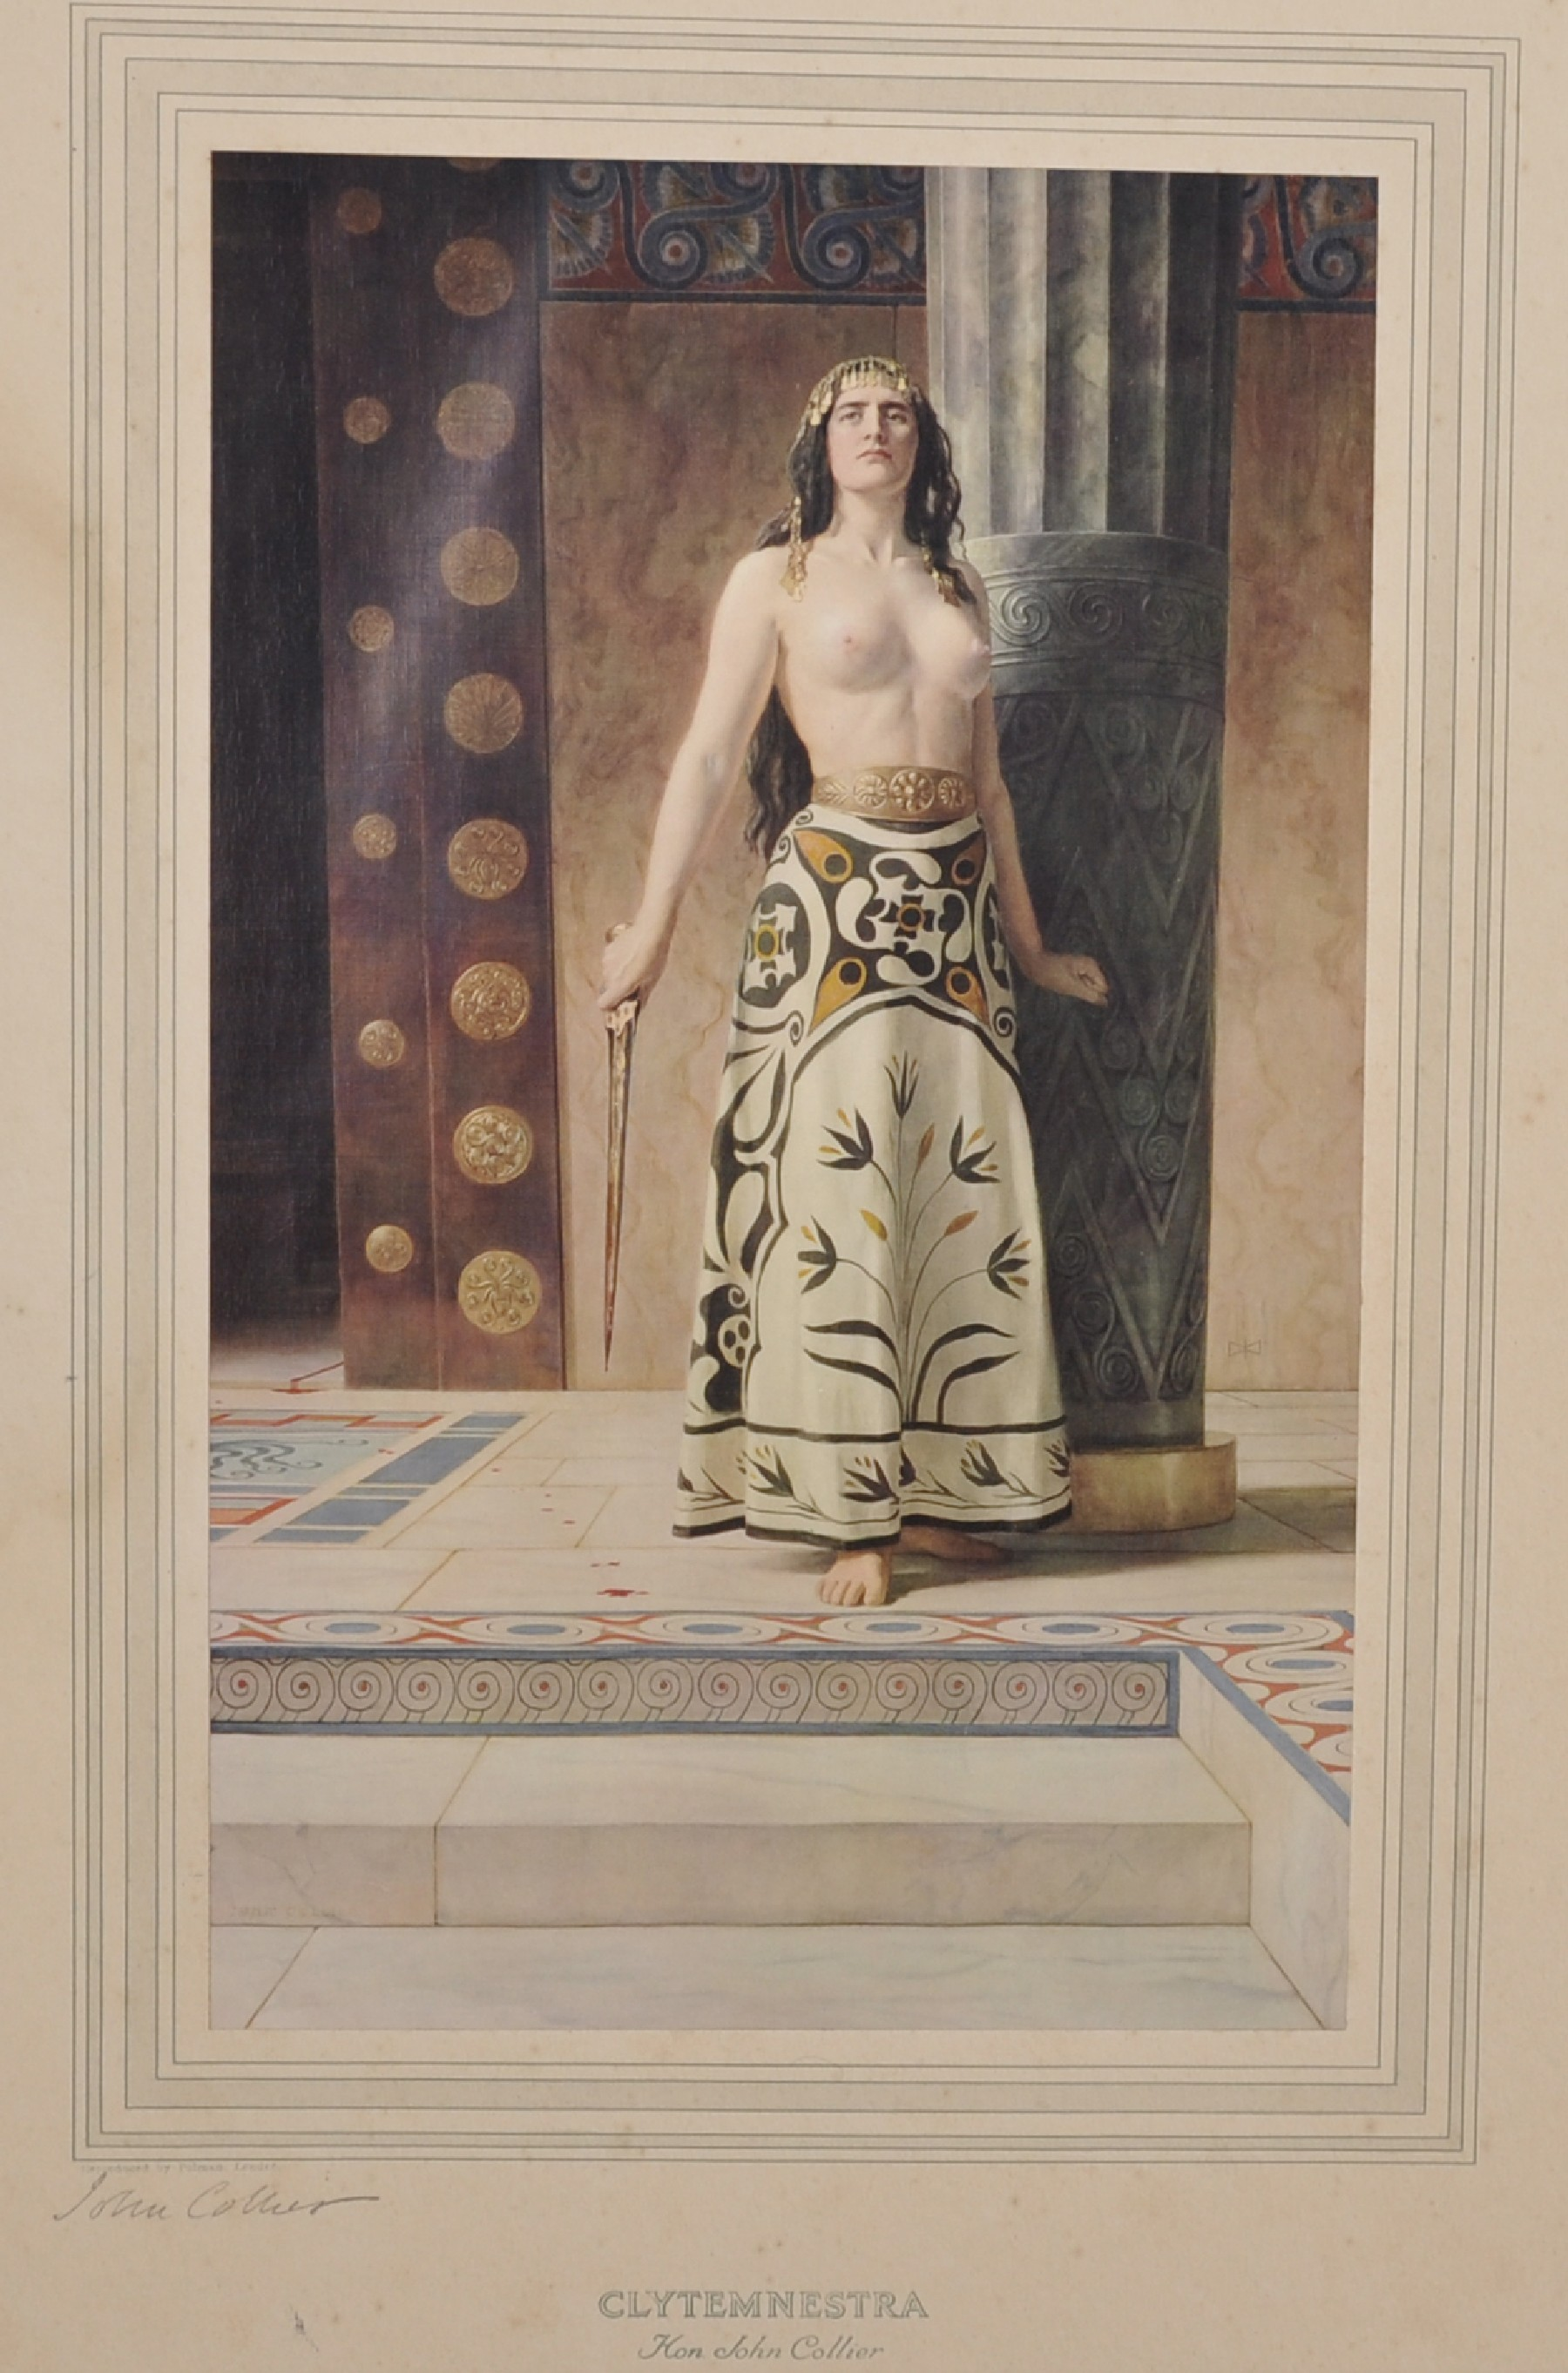 """After John Collier (1850-1934) British. """"Clytemnestra"""", Colour Reproduction, Signed in Pencil,"""